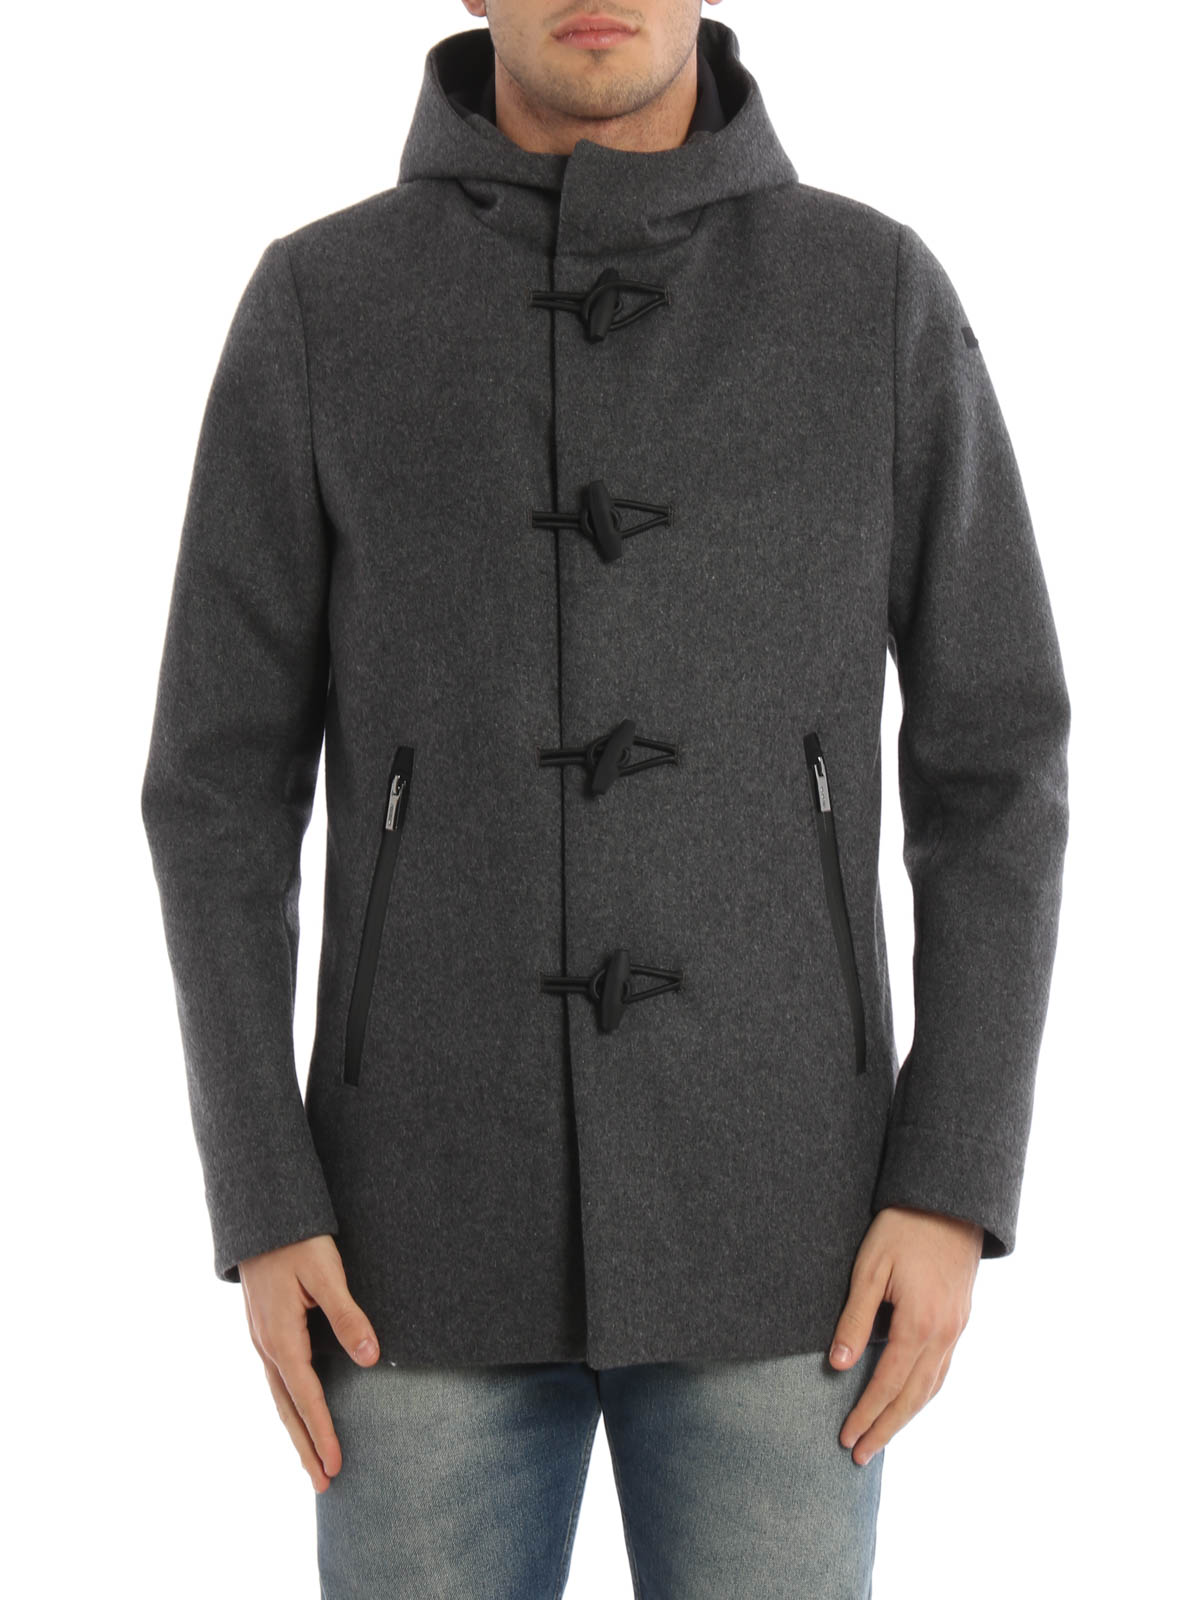 reputable site 01be2 73df4 RRD - Wool Montgomery hooded parka - parkas - W16029 12 ...